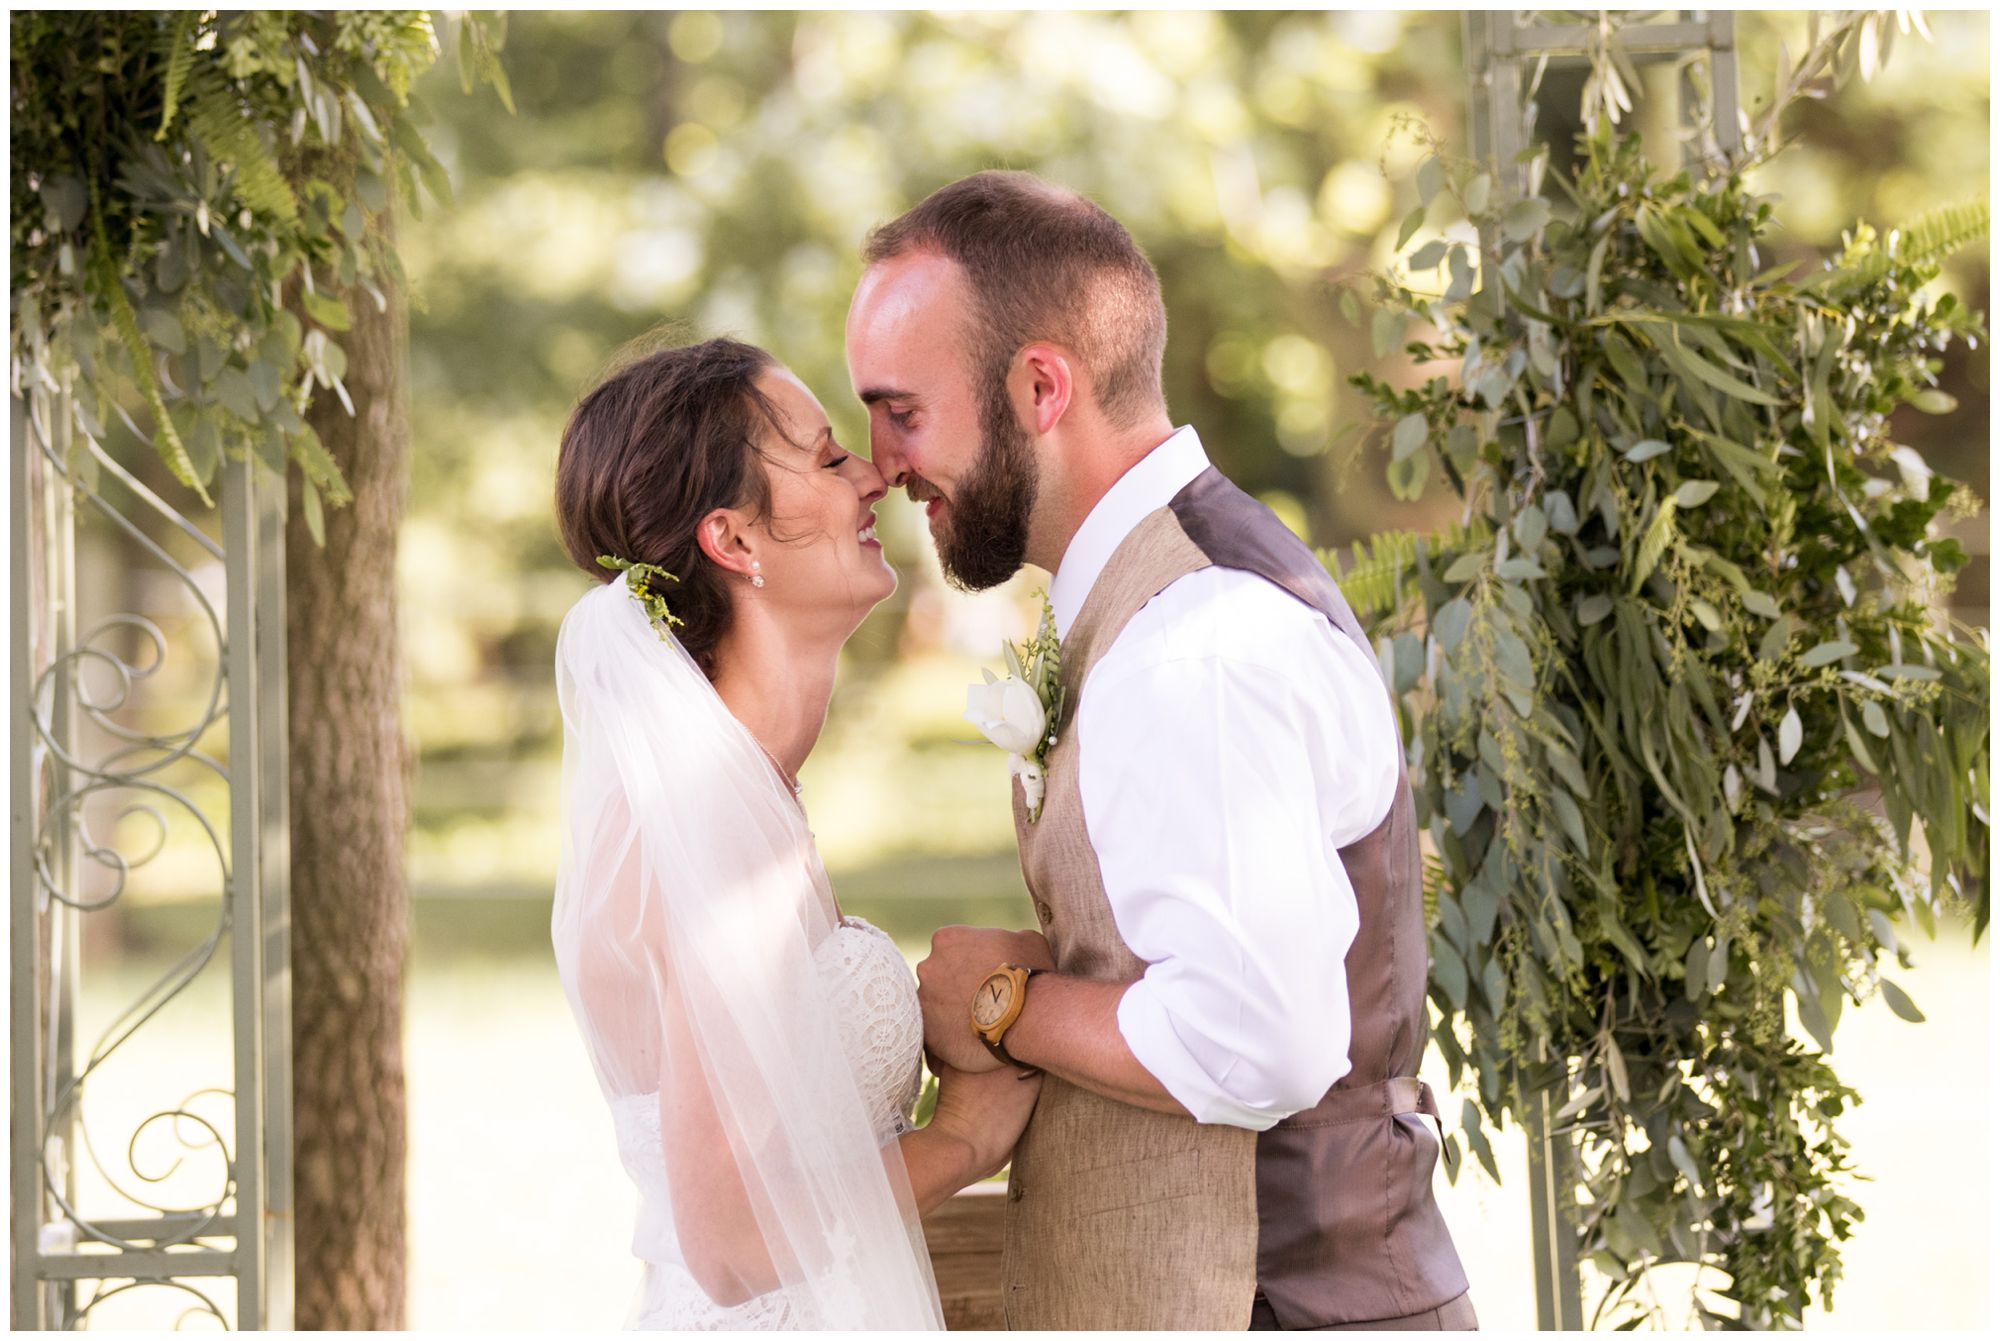 bride and groom elated at end of wedding ceremony in Indianapolis